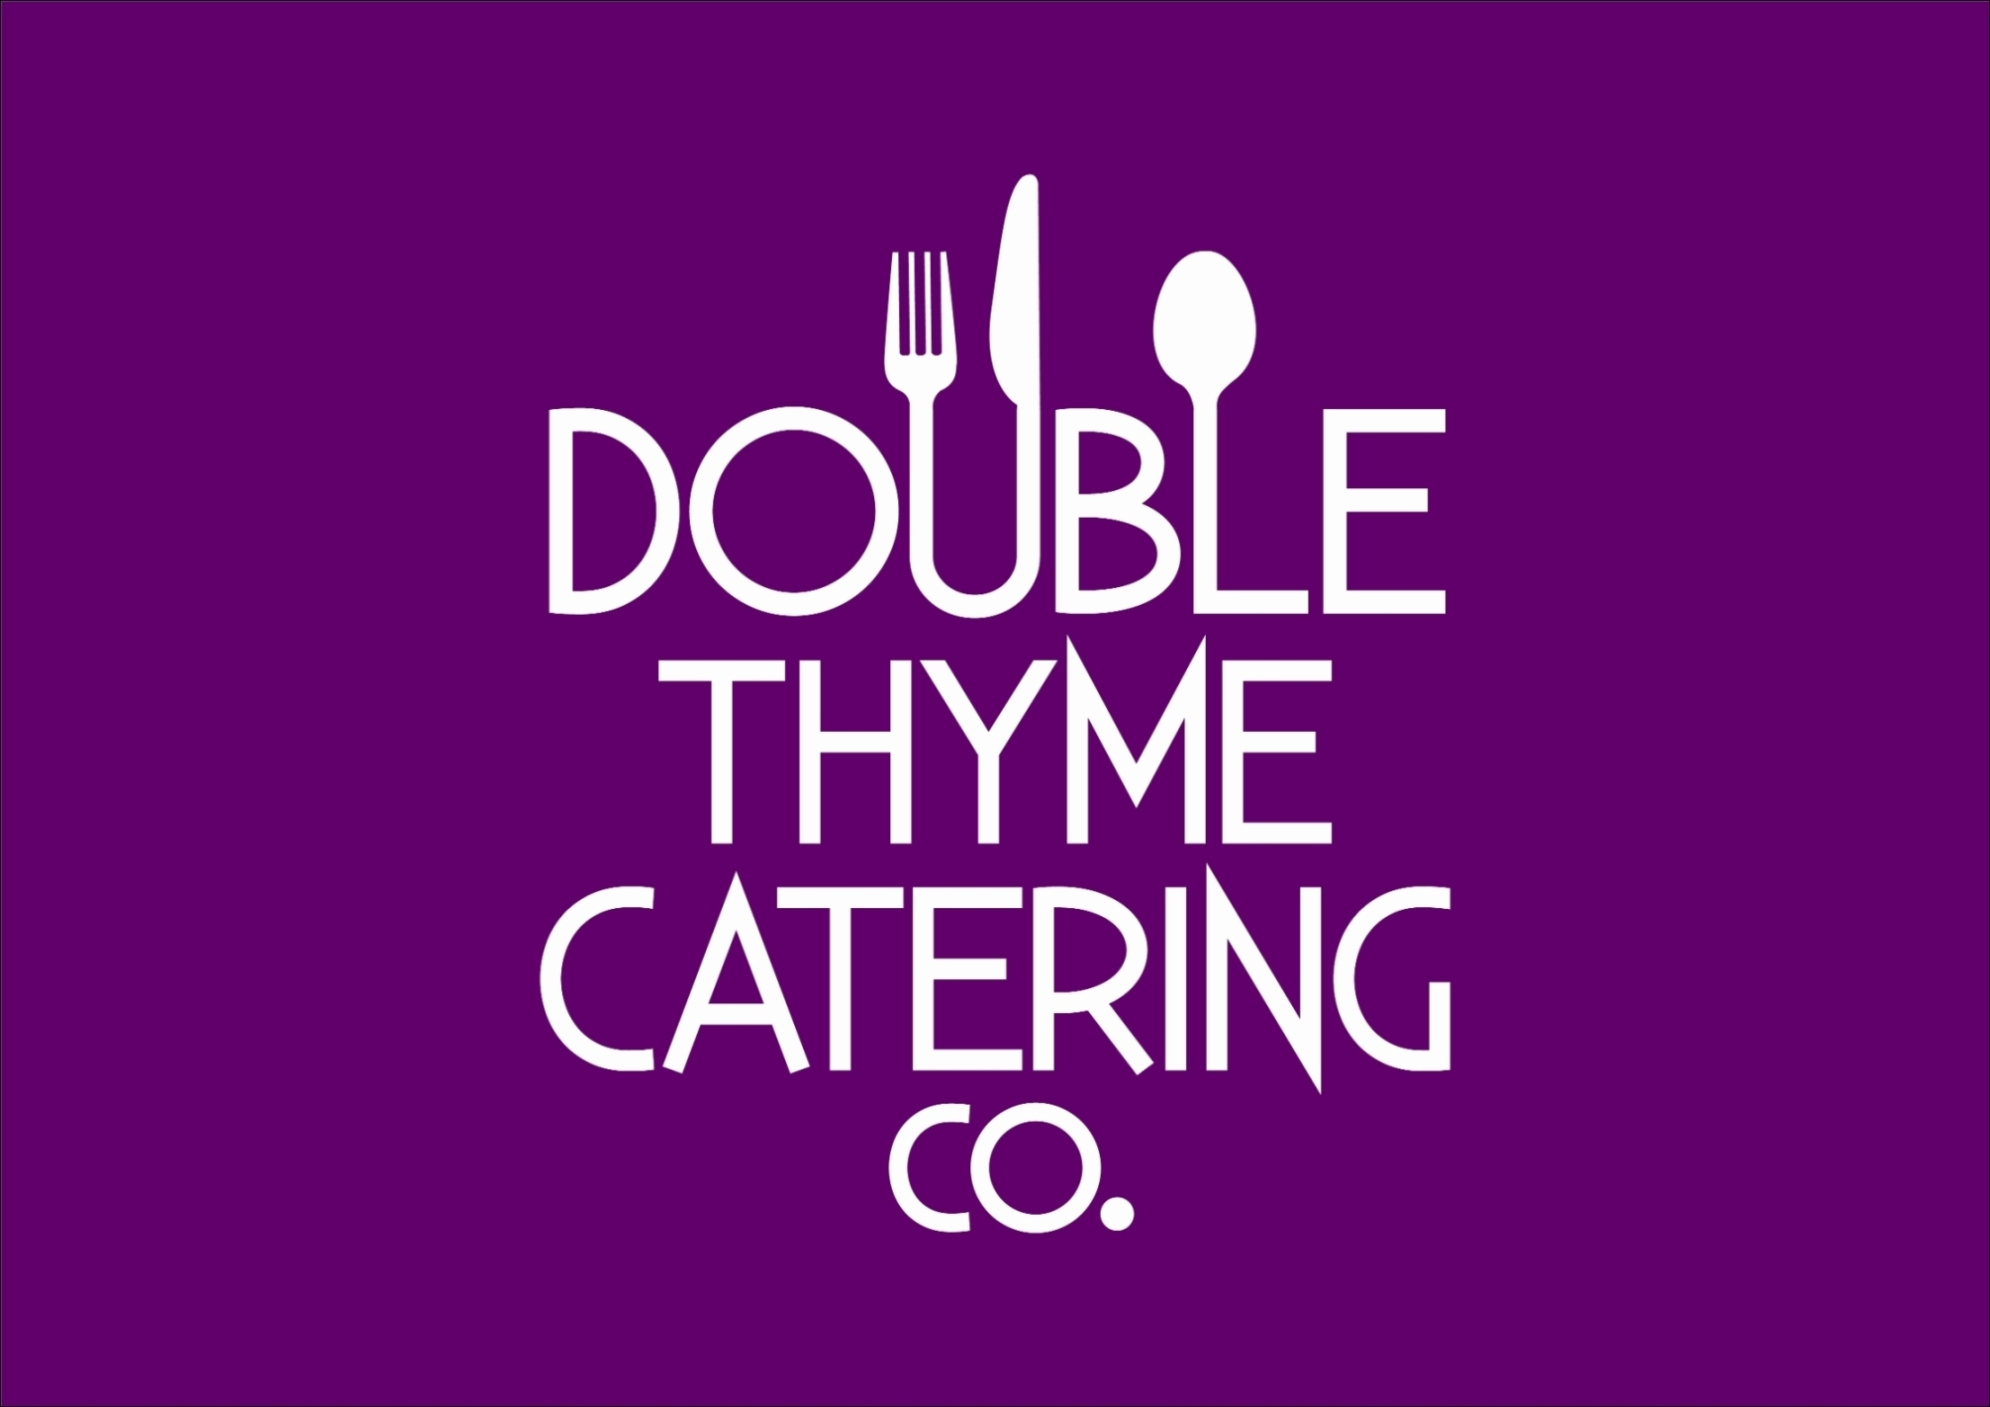 Double Thyme Catering Co